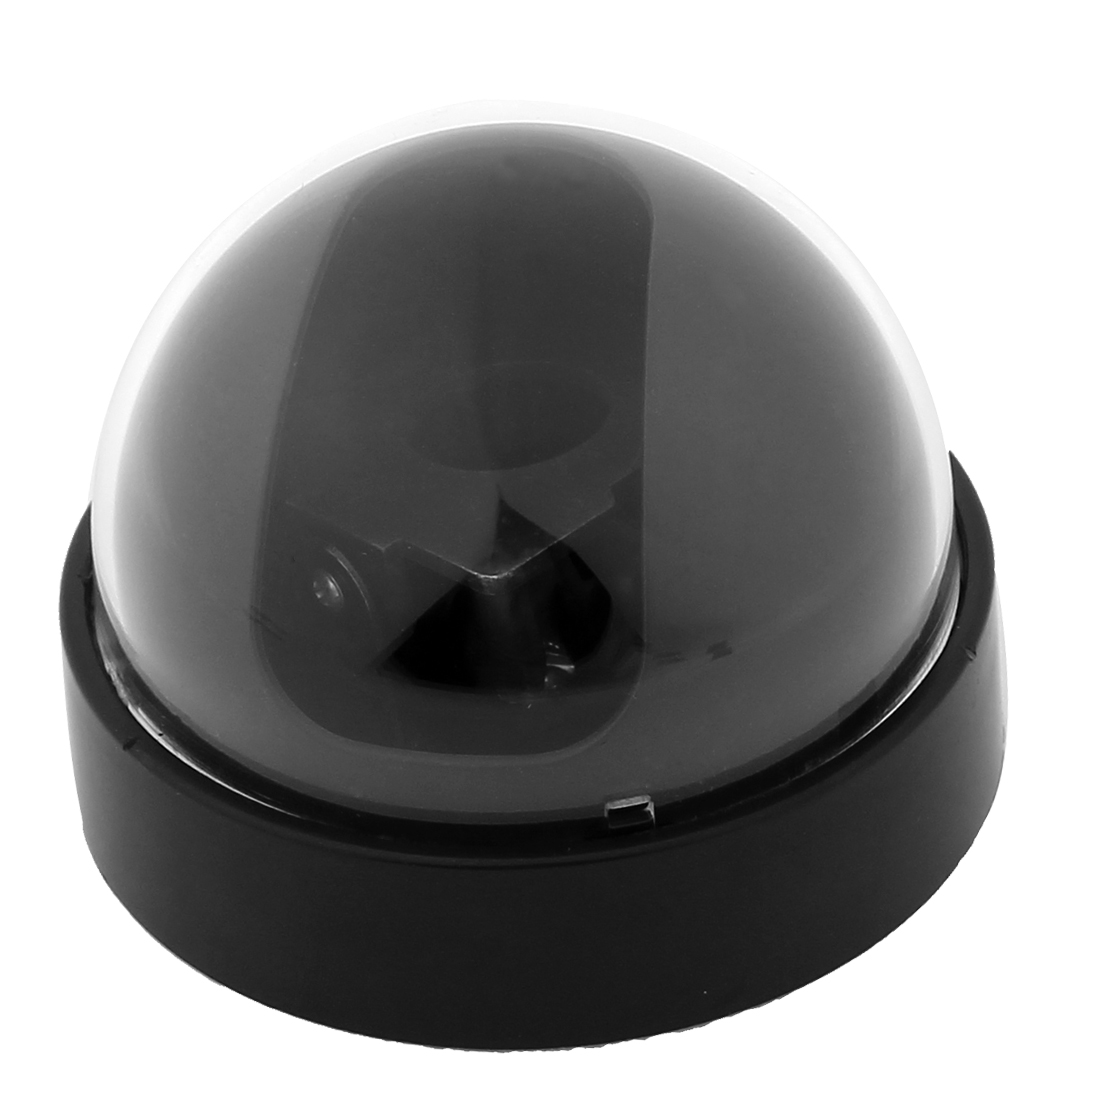 "Black Plastic Surveillance Security CCTV Dome Camera Housing Case 3.5"" Dia"